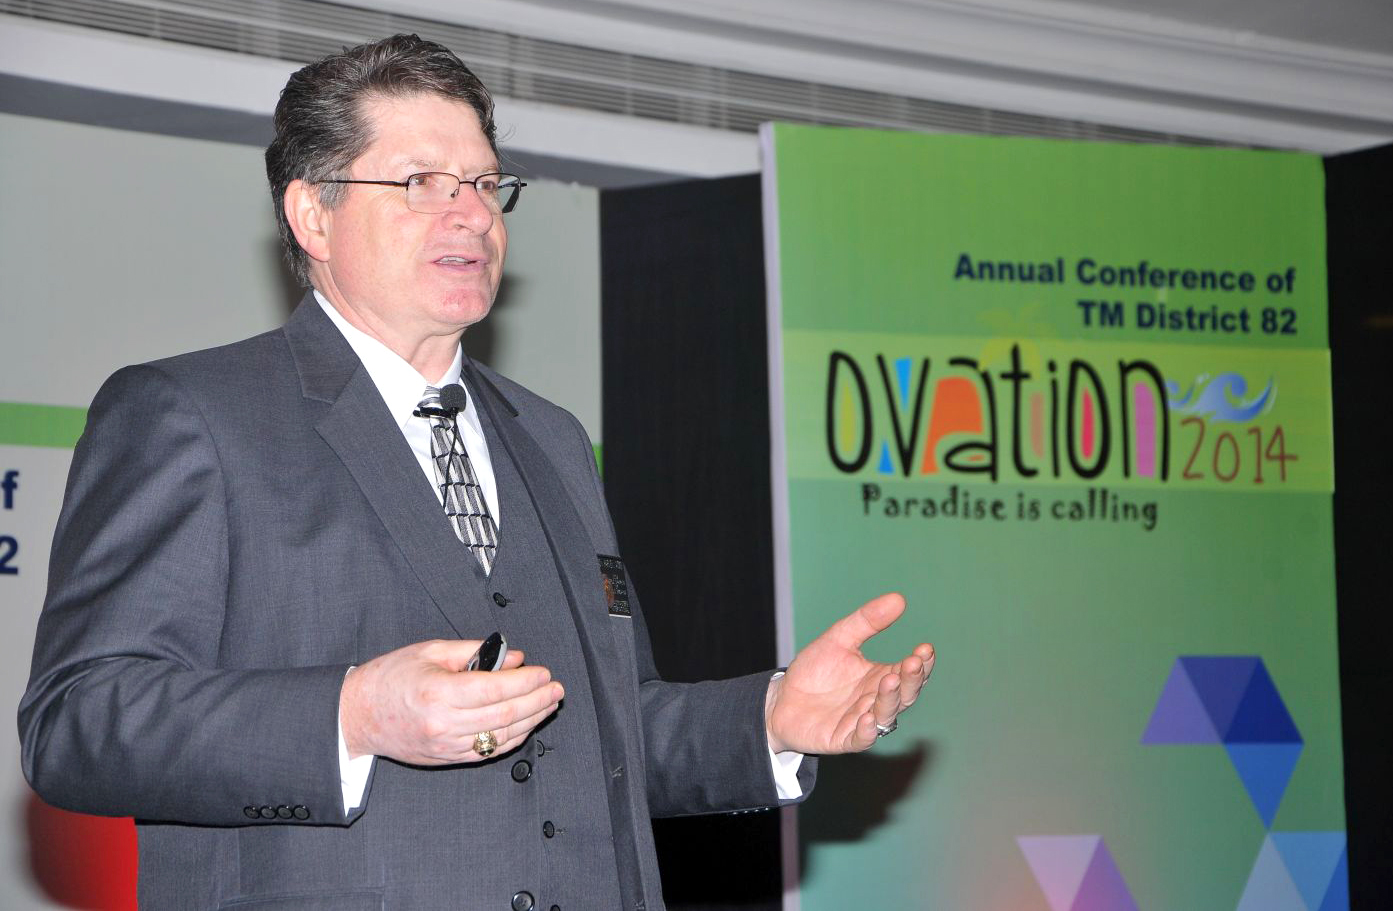 Randy J Harvey at Ovation 2014